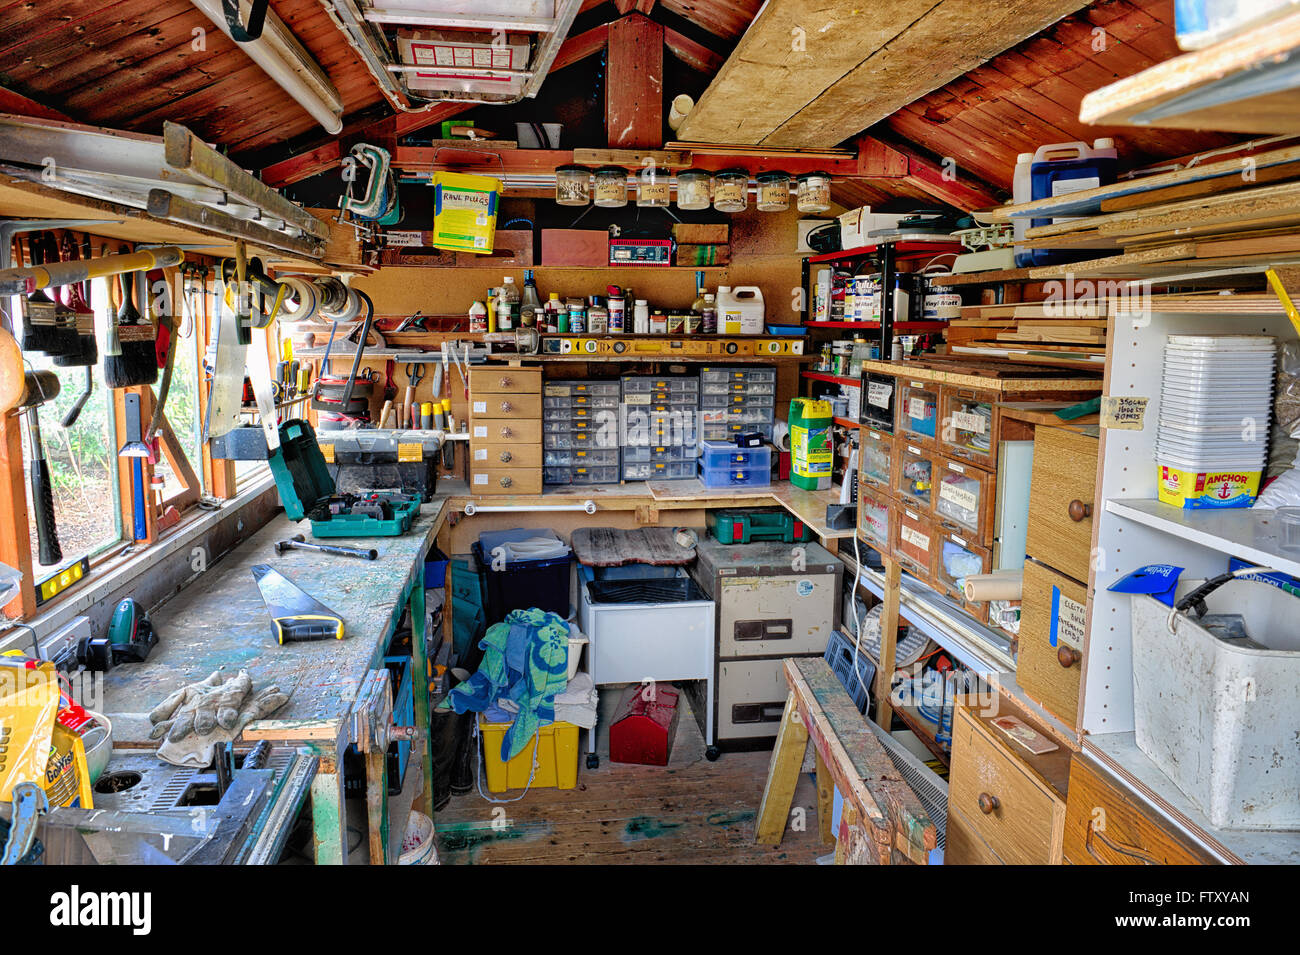 Inside a tool shed in a garden. HDR - Stock Image